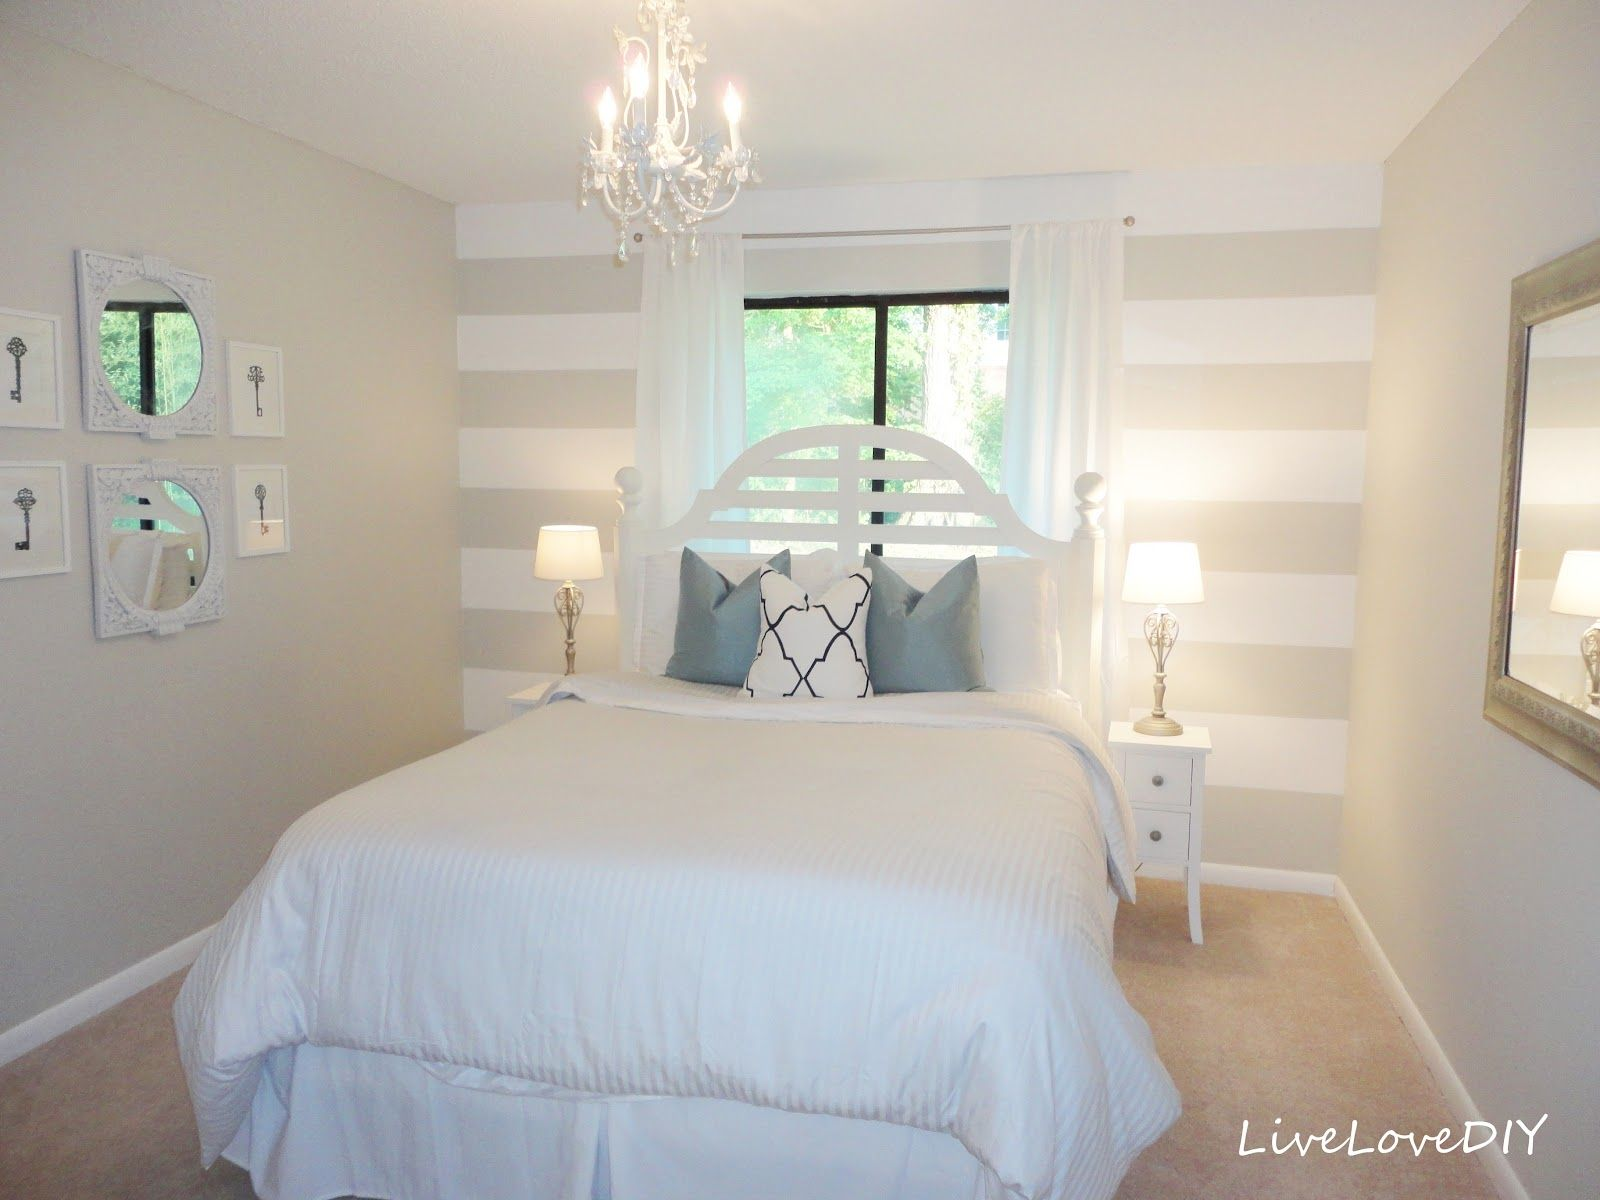 Accent wall paint ideas bedroom  LiveLoveDIY DIY Striped Wall Guest Bedroom Makeover  My Living